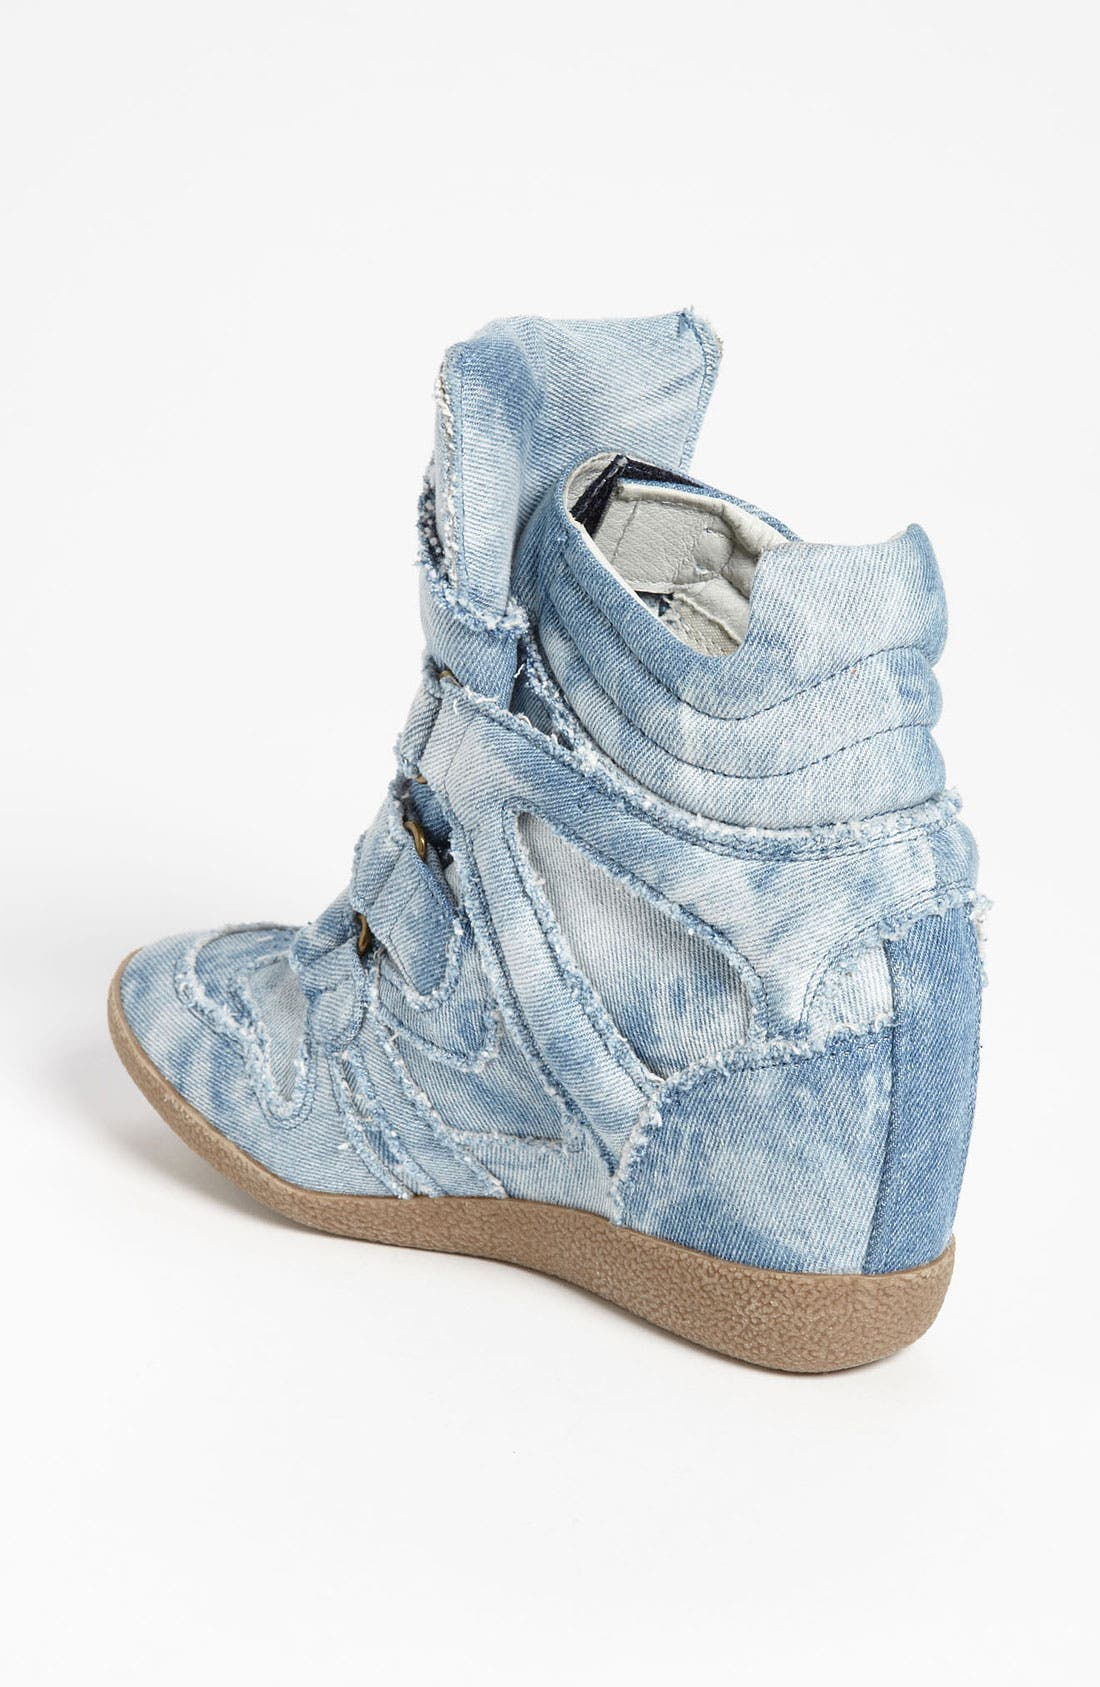 'Hilite-C' Wedge Sneaker,                             Alternate thumbnail 2, color,                             Denim